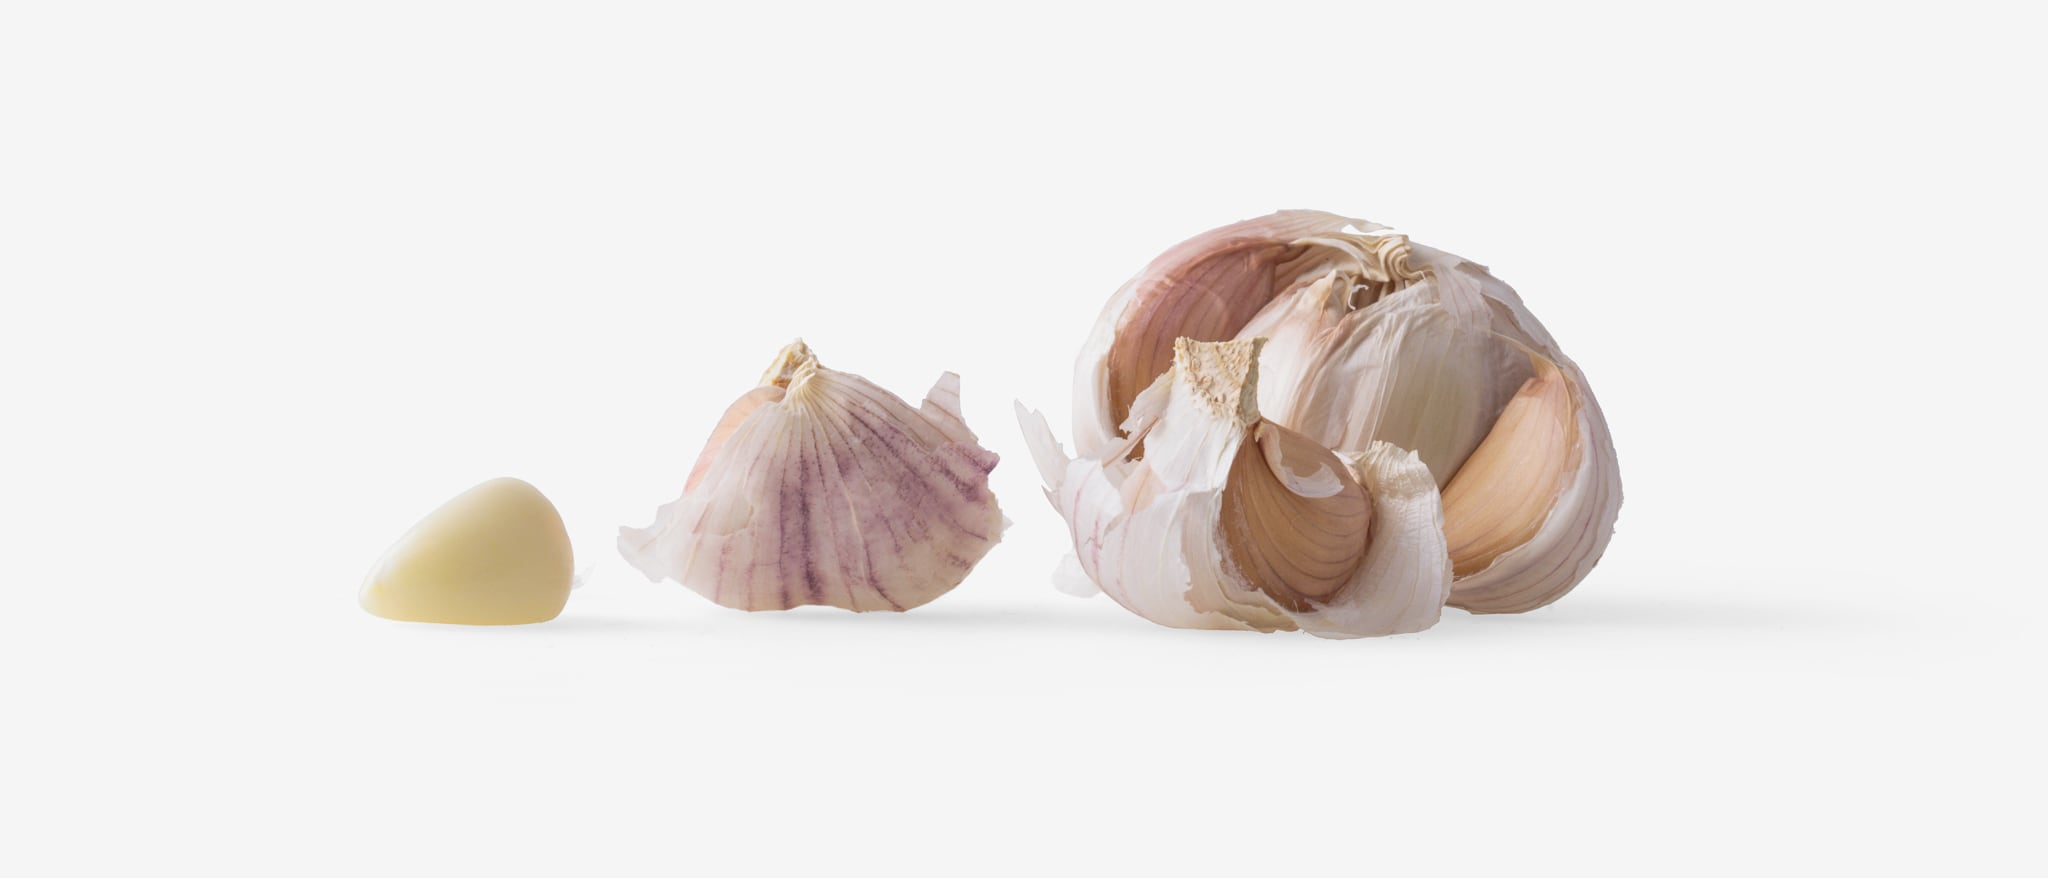 Garlic image with transparent background